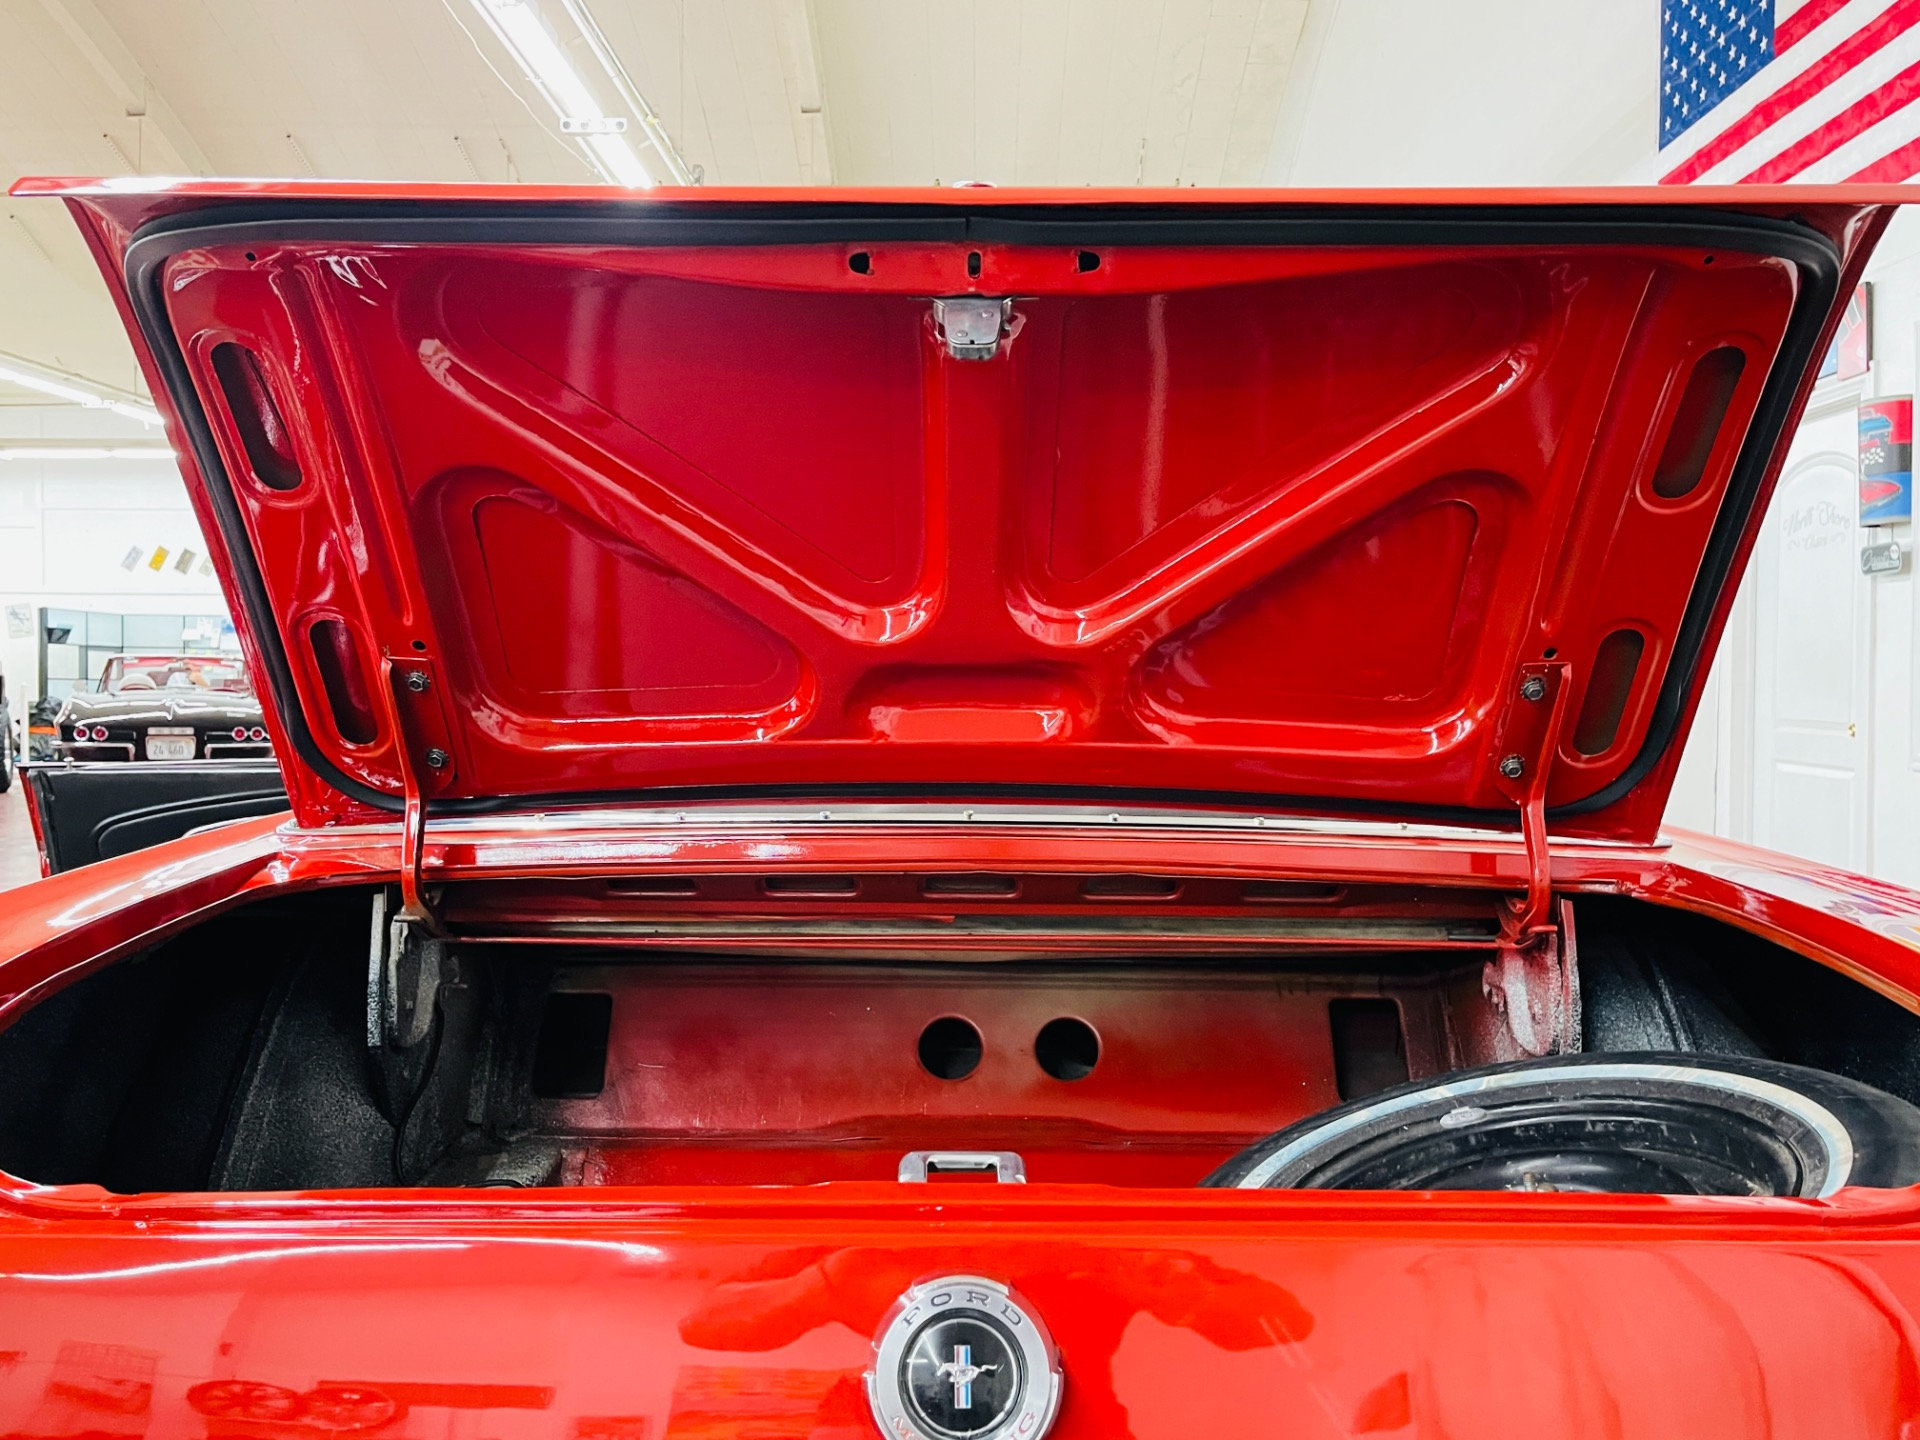 Used 1965 Ford Mustang - CONVERTIBLE - 289 V8 ENGINE - AUTO TRANS - SEE VIDEO | Mundelein, IL